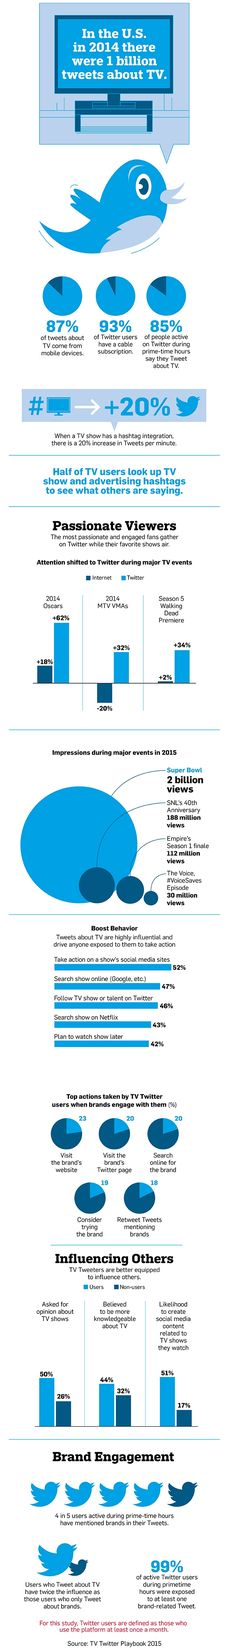 How Twitter Is Reshaping the TV Landscape - Infographic